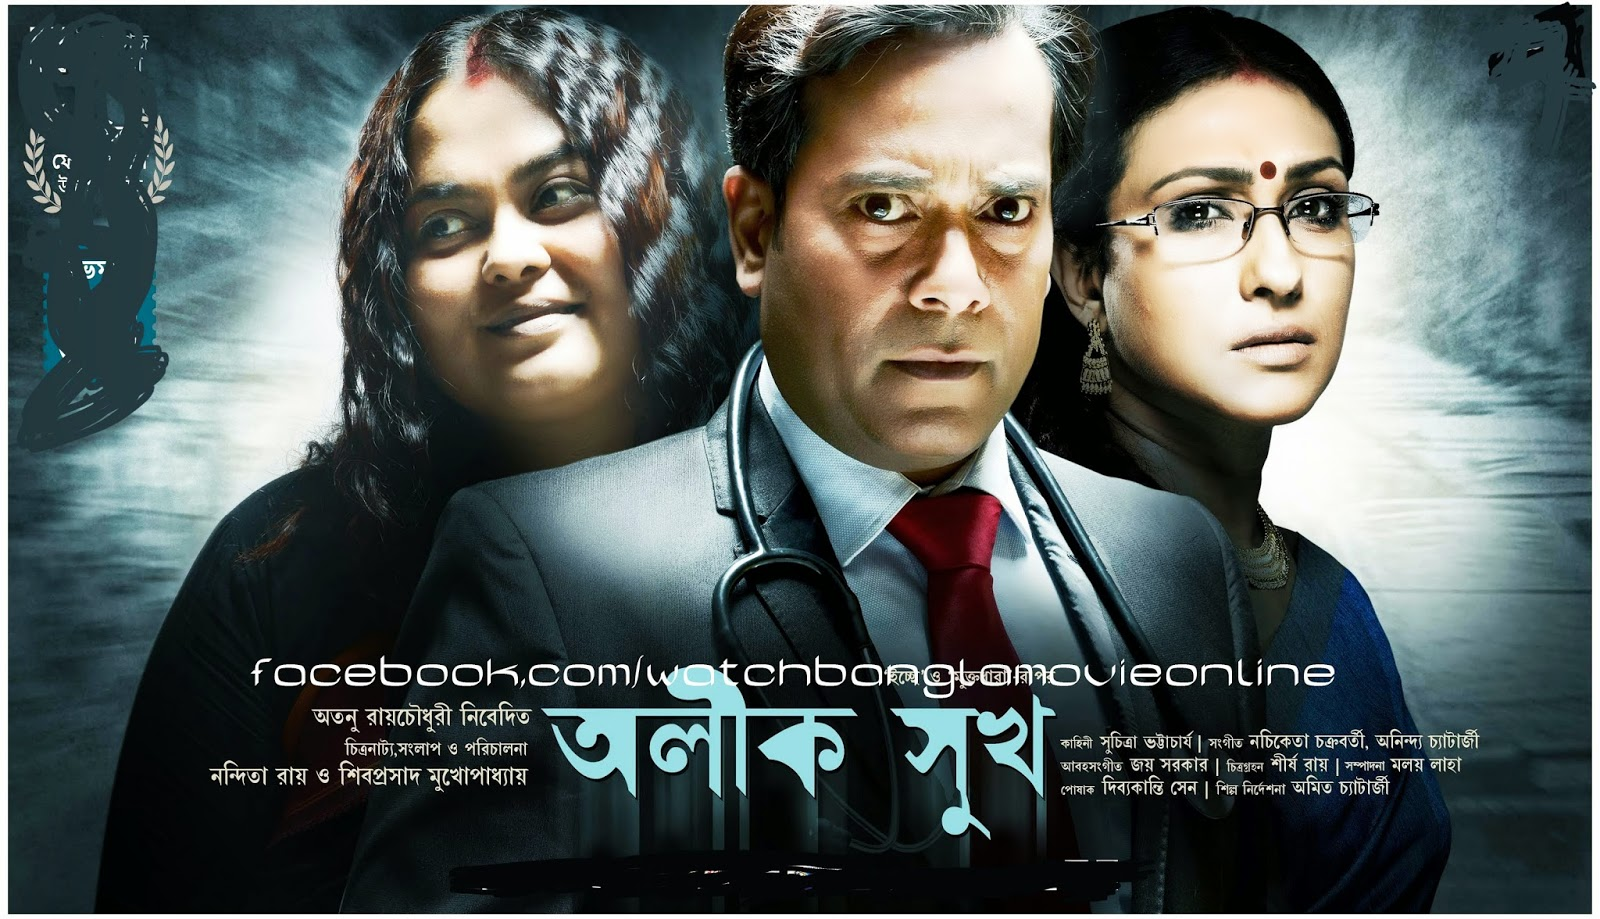 Hd Wallpaper Download Watch All New Bangla Movie Online -6511